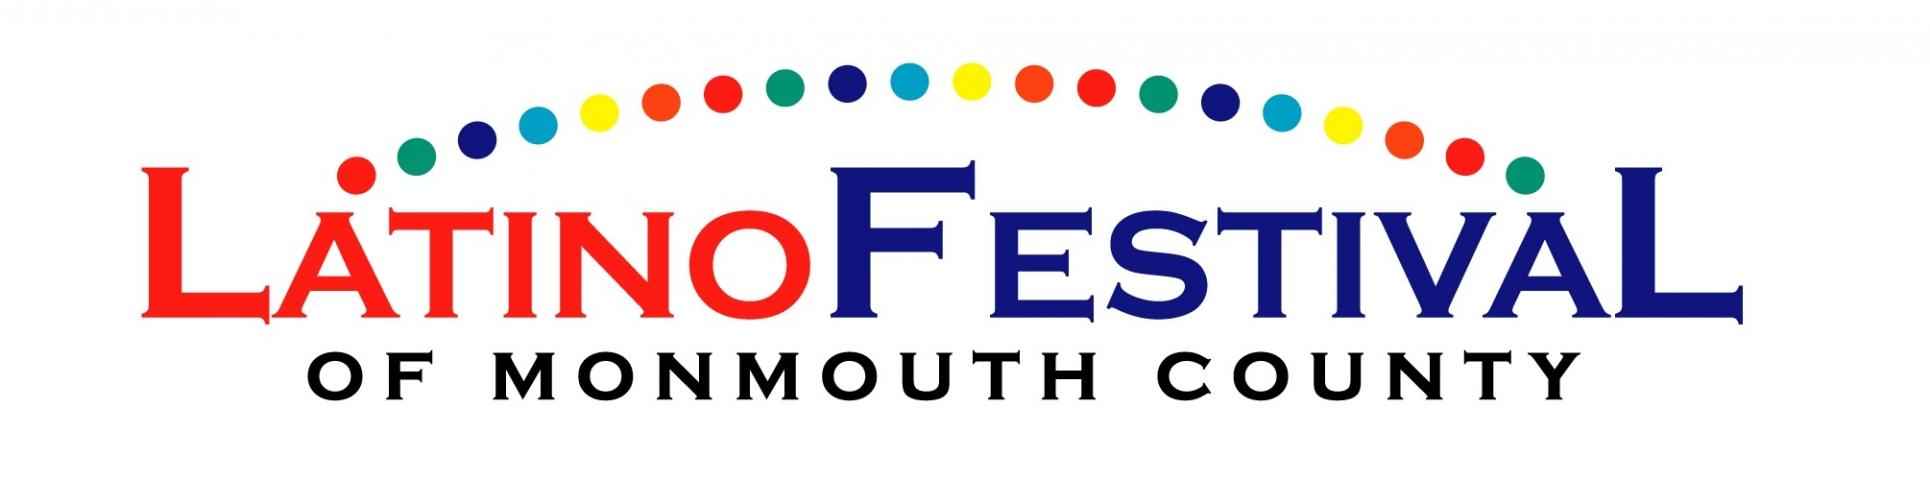 Latino Festival of Monmouth County